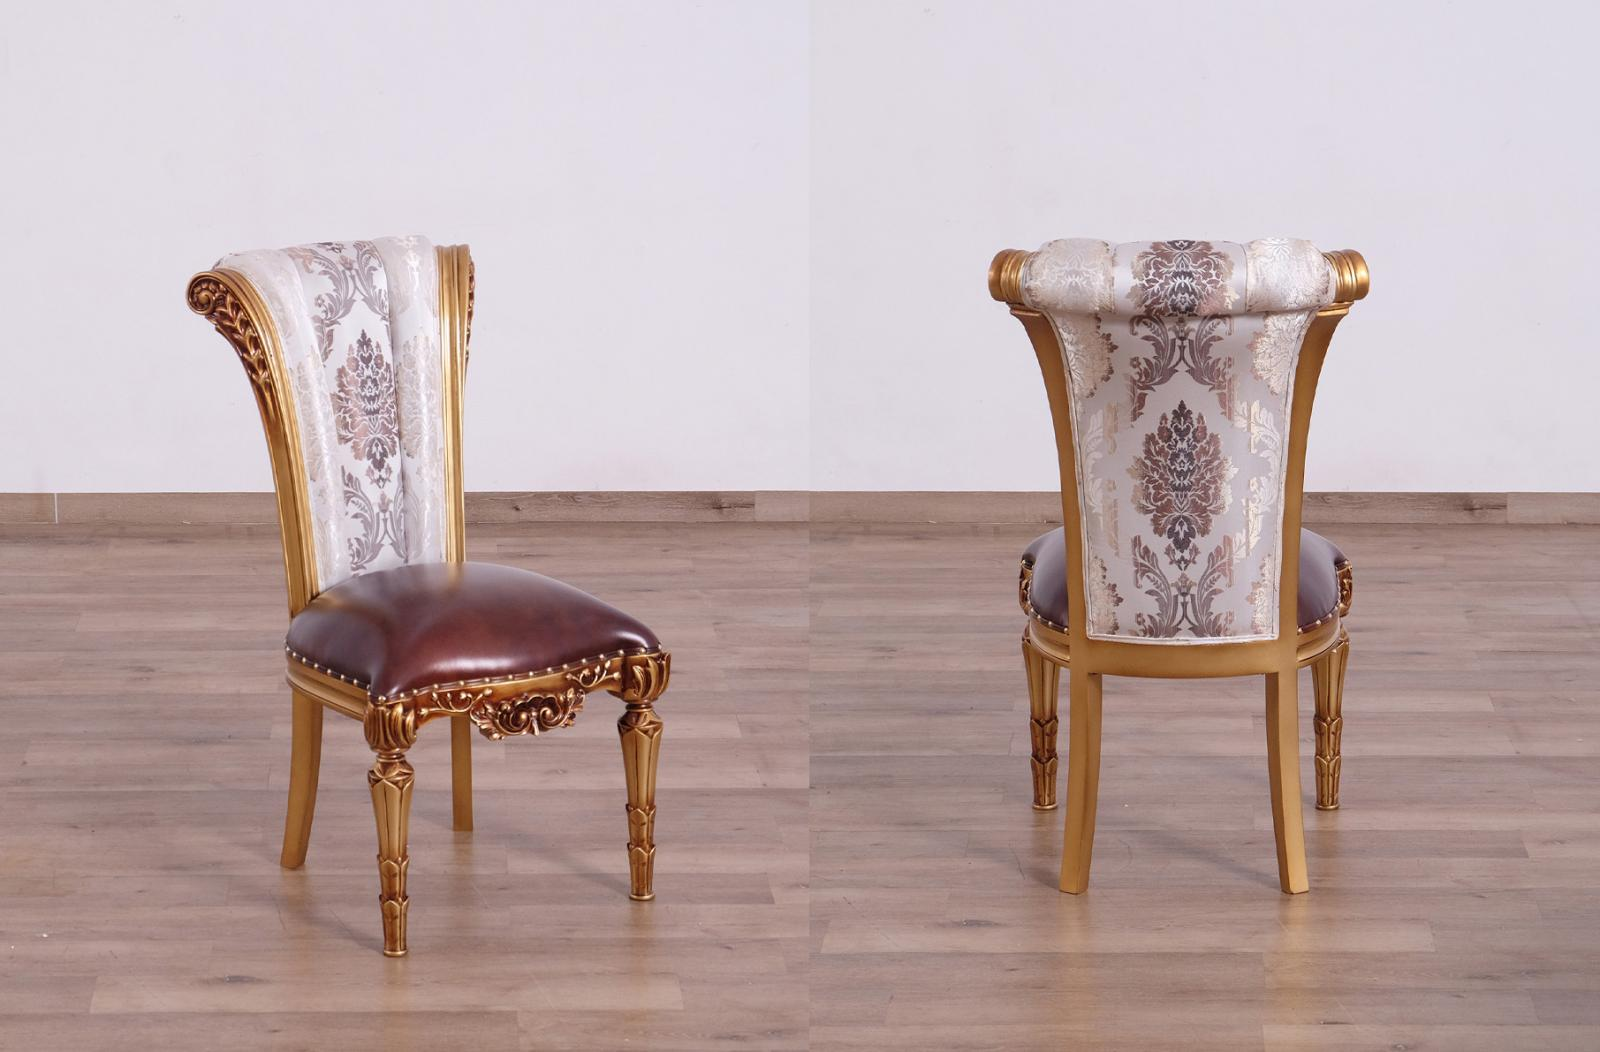 Classic, Traditional Bronze, Gold, Ebony, Pearl Leather and Fabric, Wood, Solid Hardwood Dining Chair Set 2 pcs VALENTINA by European Furniture